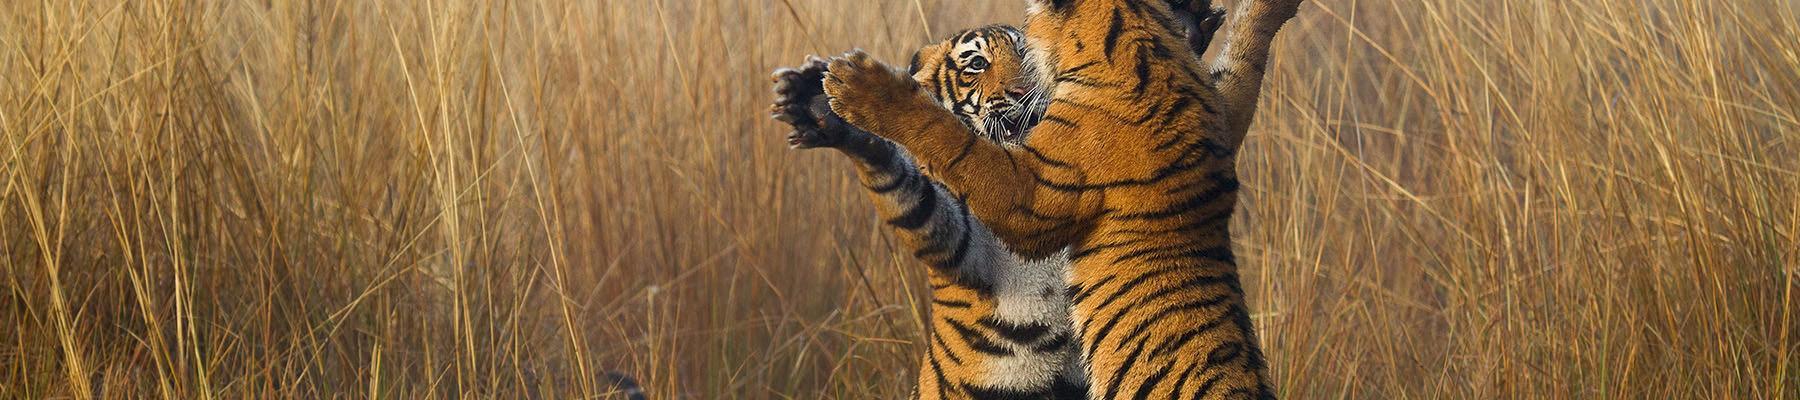 Two tiger cubs Panthera tigris playing © Souvik Kundu / WWF